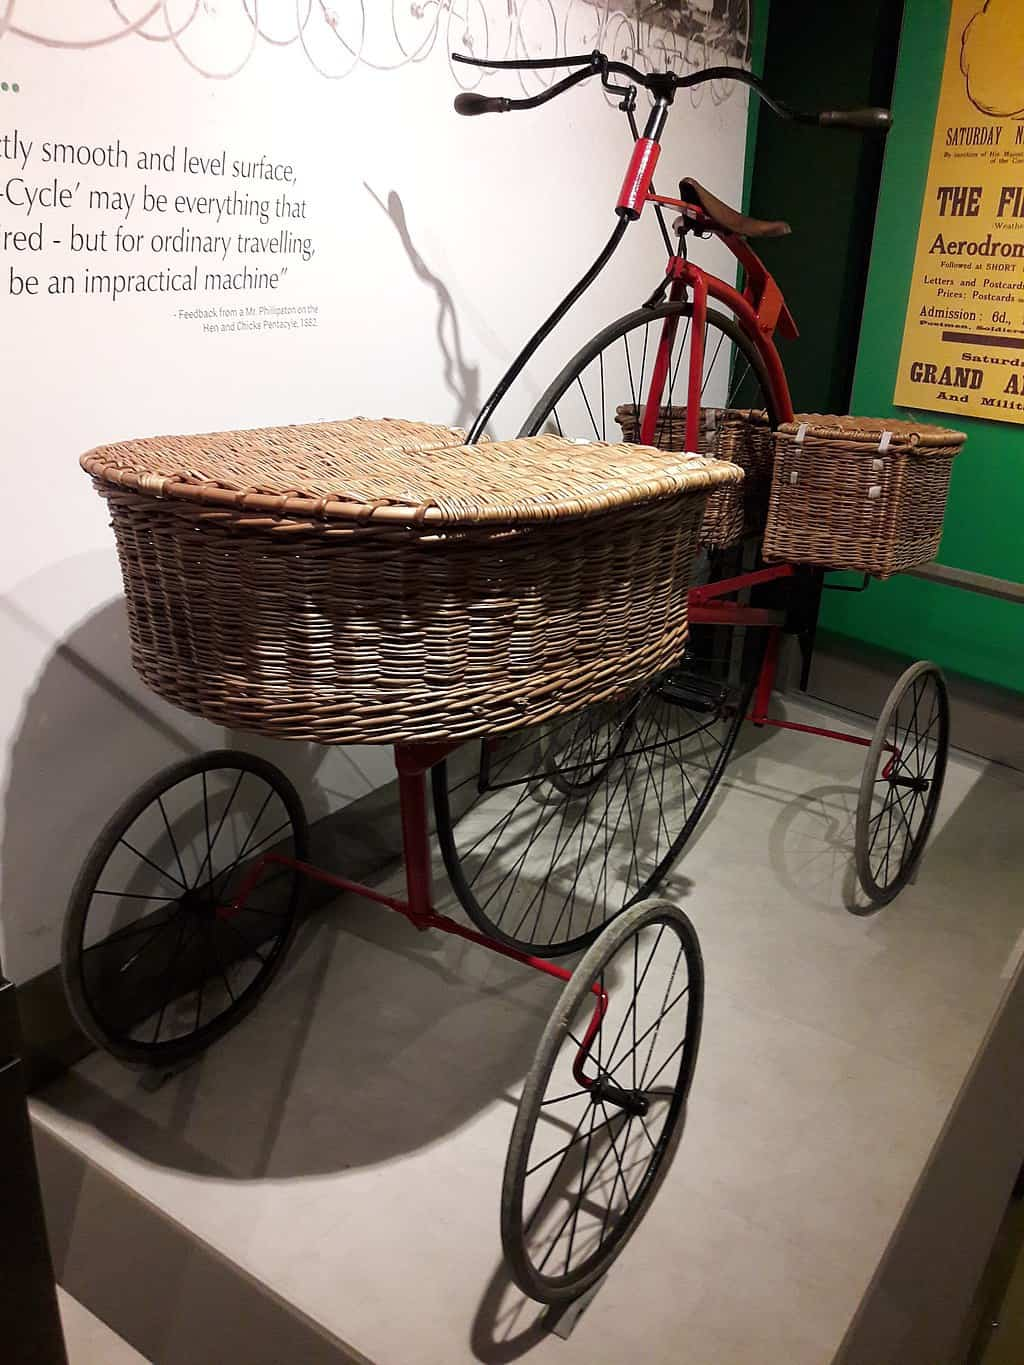 Pentacycle in London Postal Museum with wicker baskets on front and back